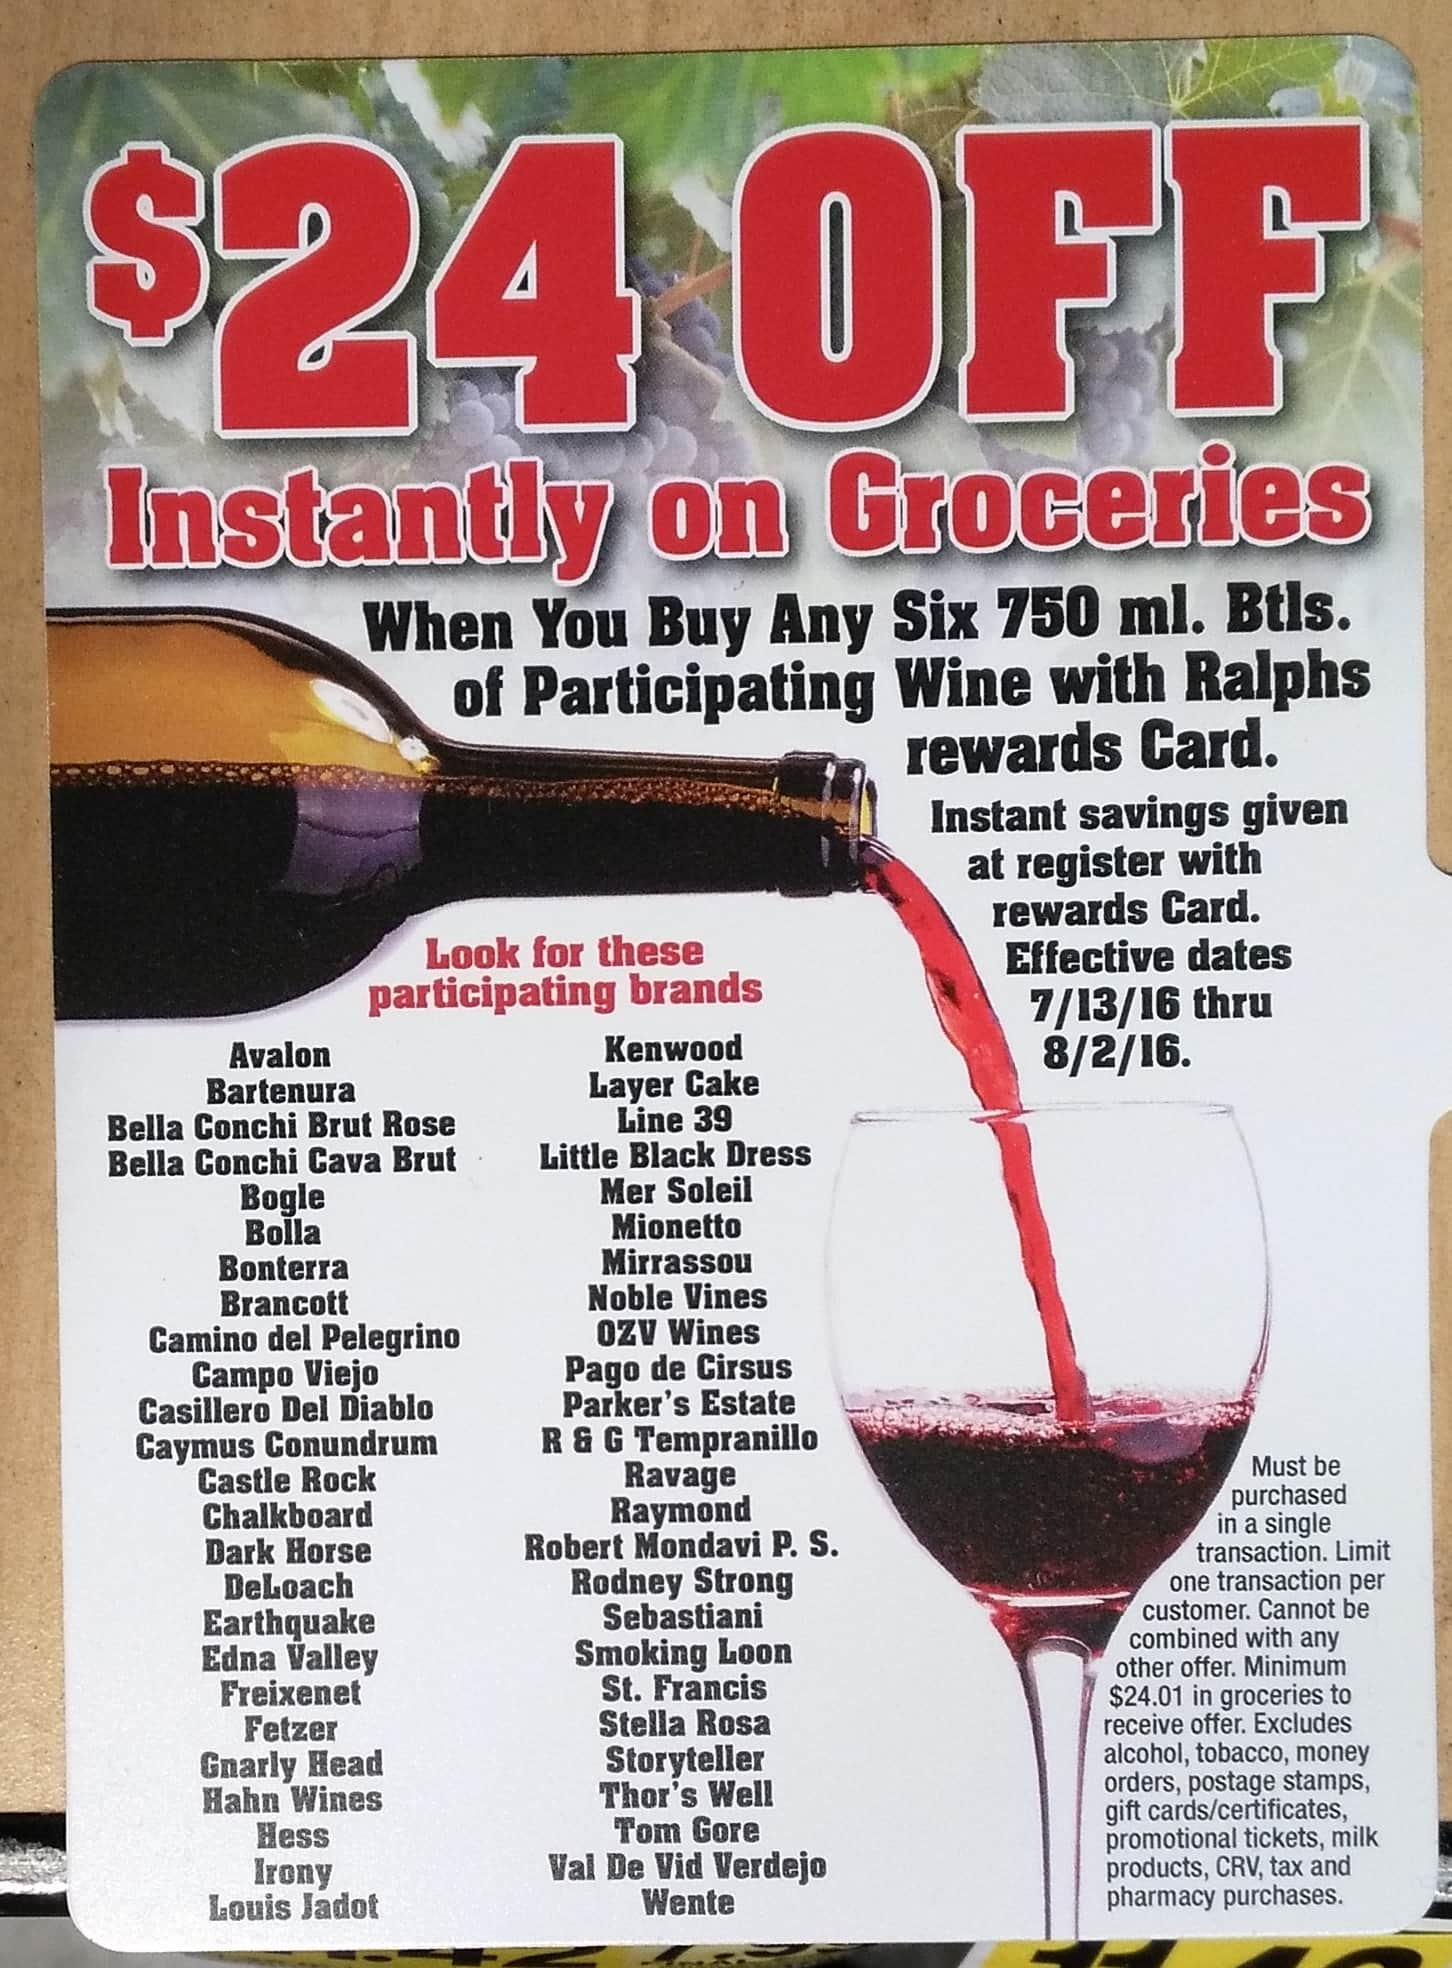 Buy 6 bottles of Wine at Ralphs, get 30% off AND $24.01 of free groceries